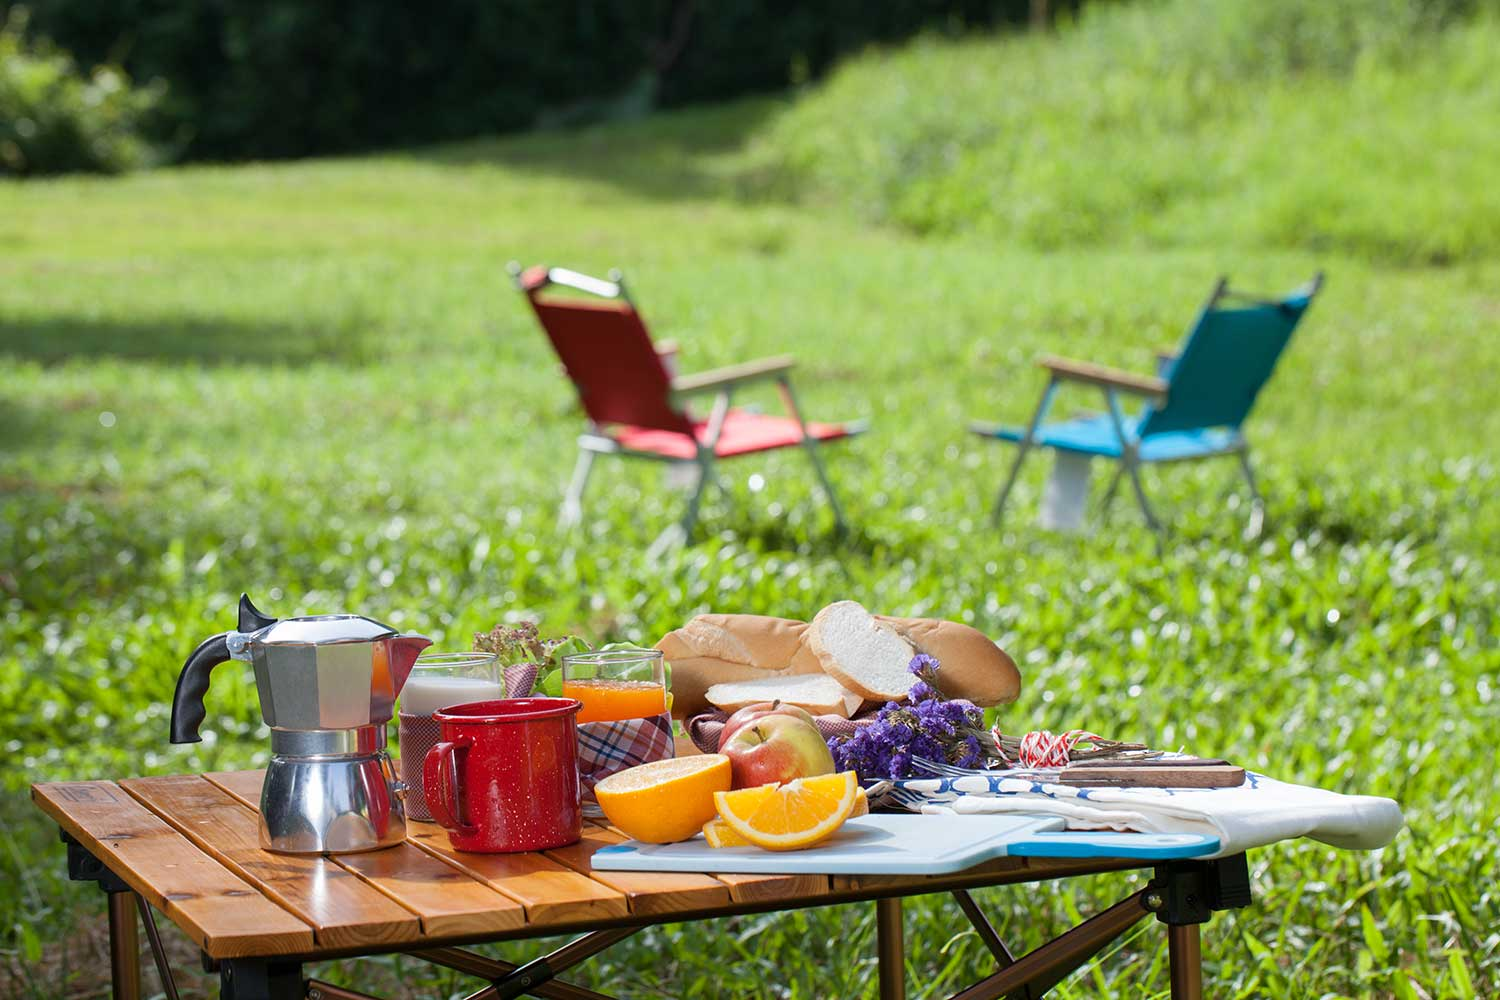 picnic table covered in fruit and flowers next to two folding chairs